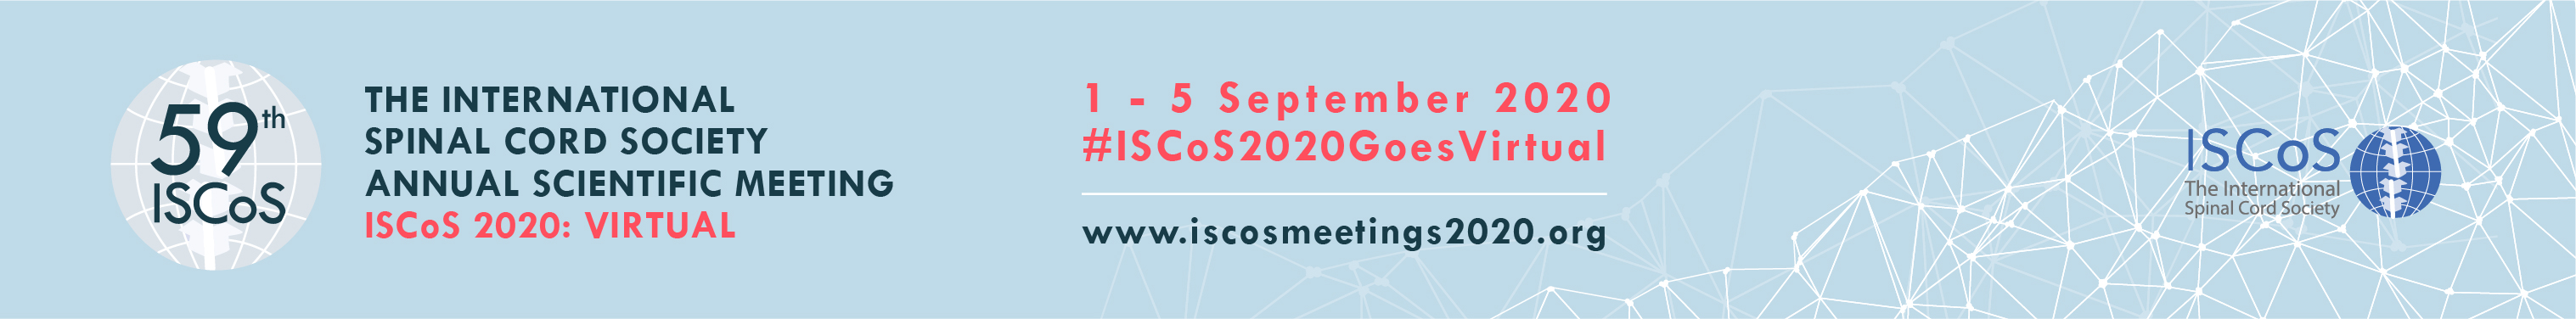 ISCoS2020 VIRTUAL Banners 728x90px LR